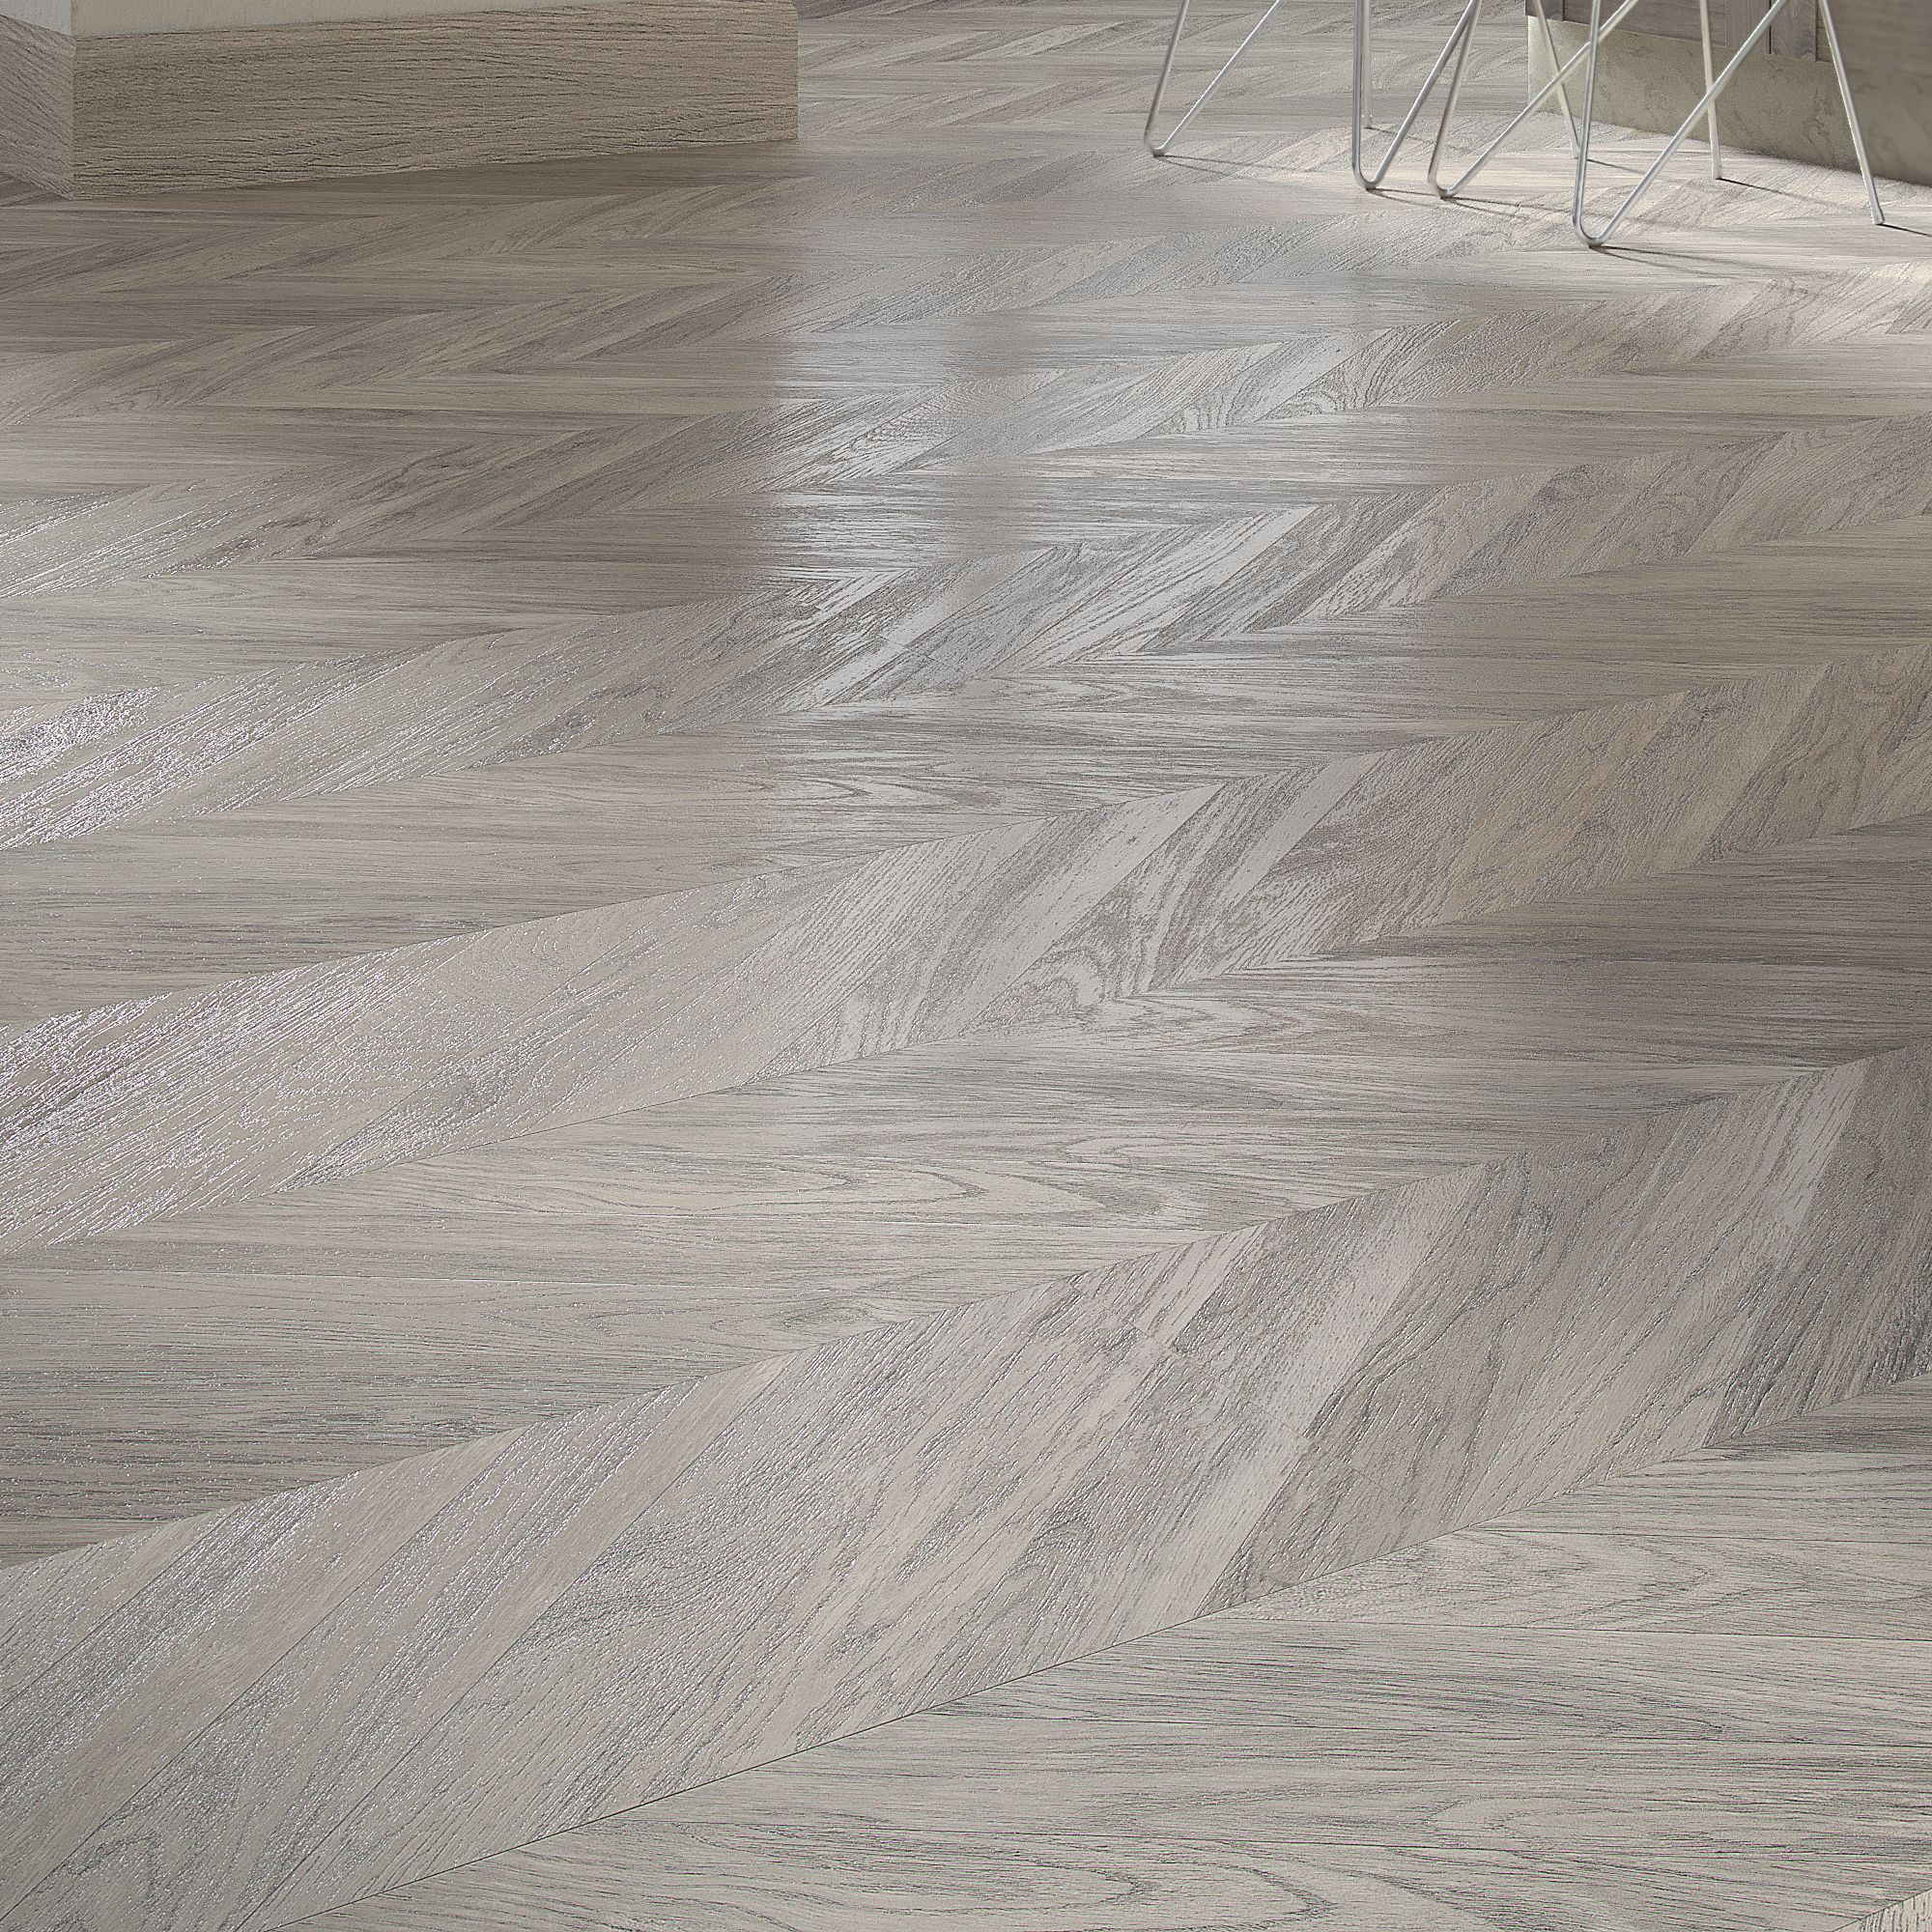 Alessano Grey Oak Effect Laminate Flooring 1 39 M² Pack